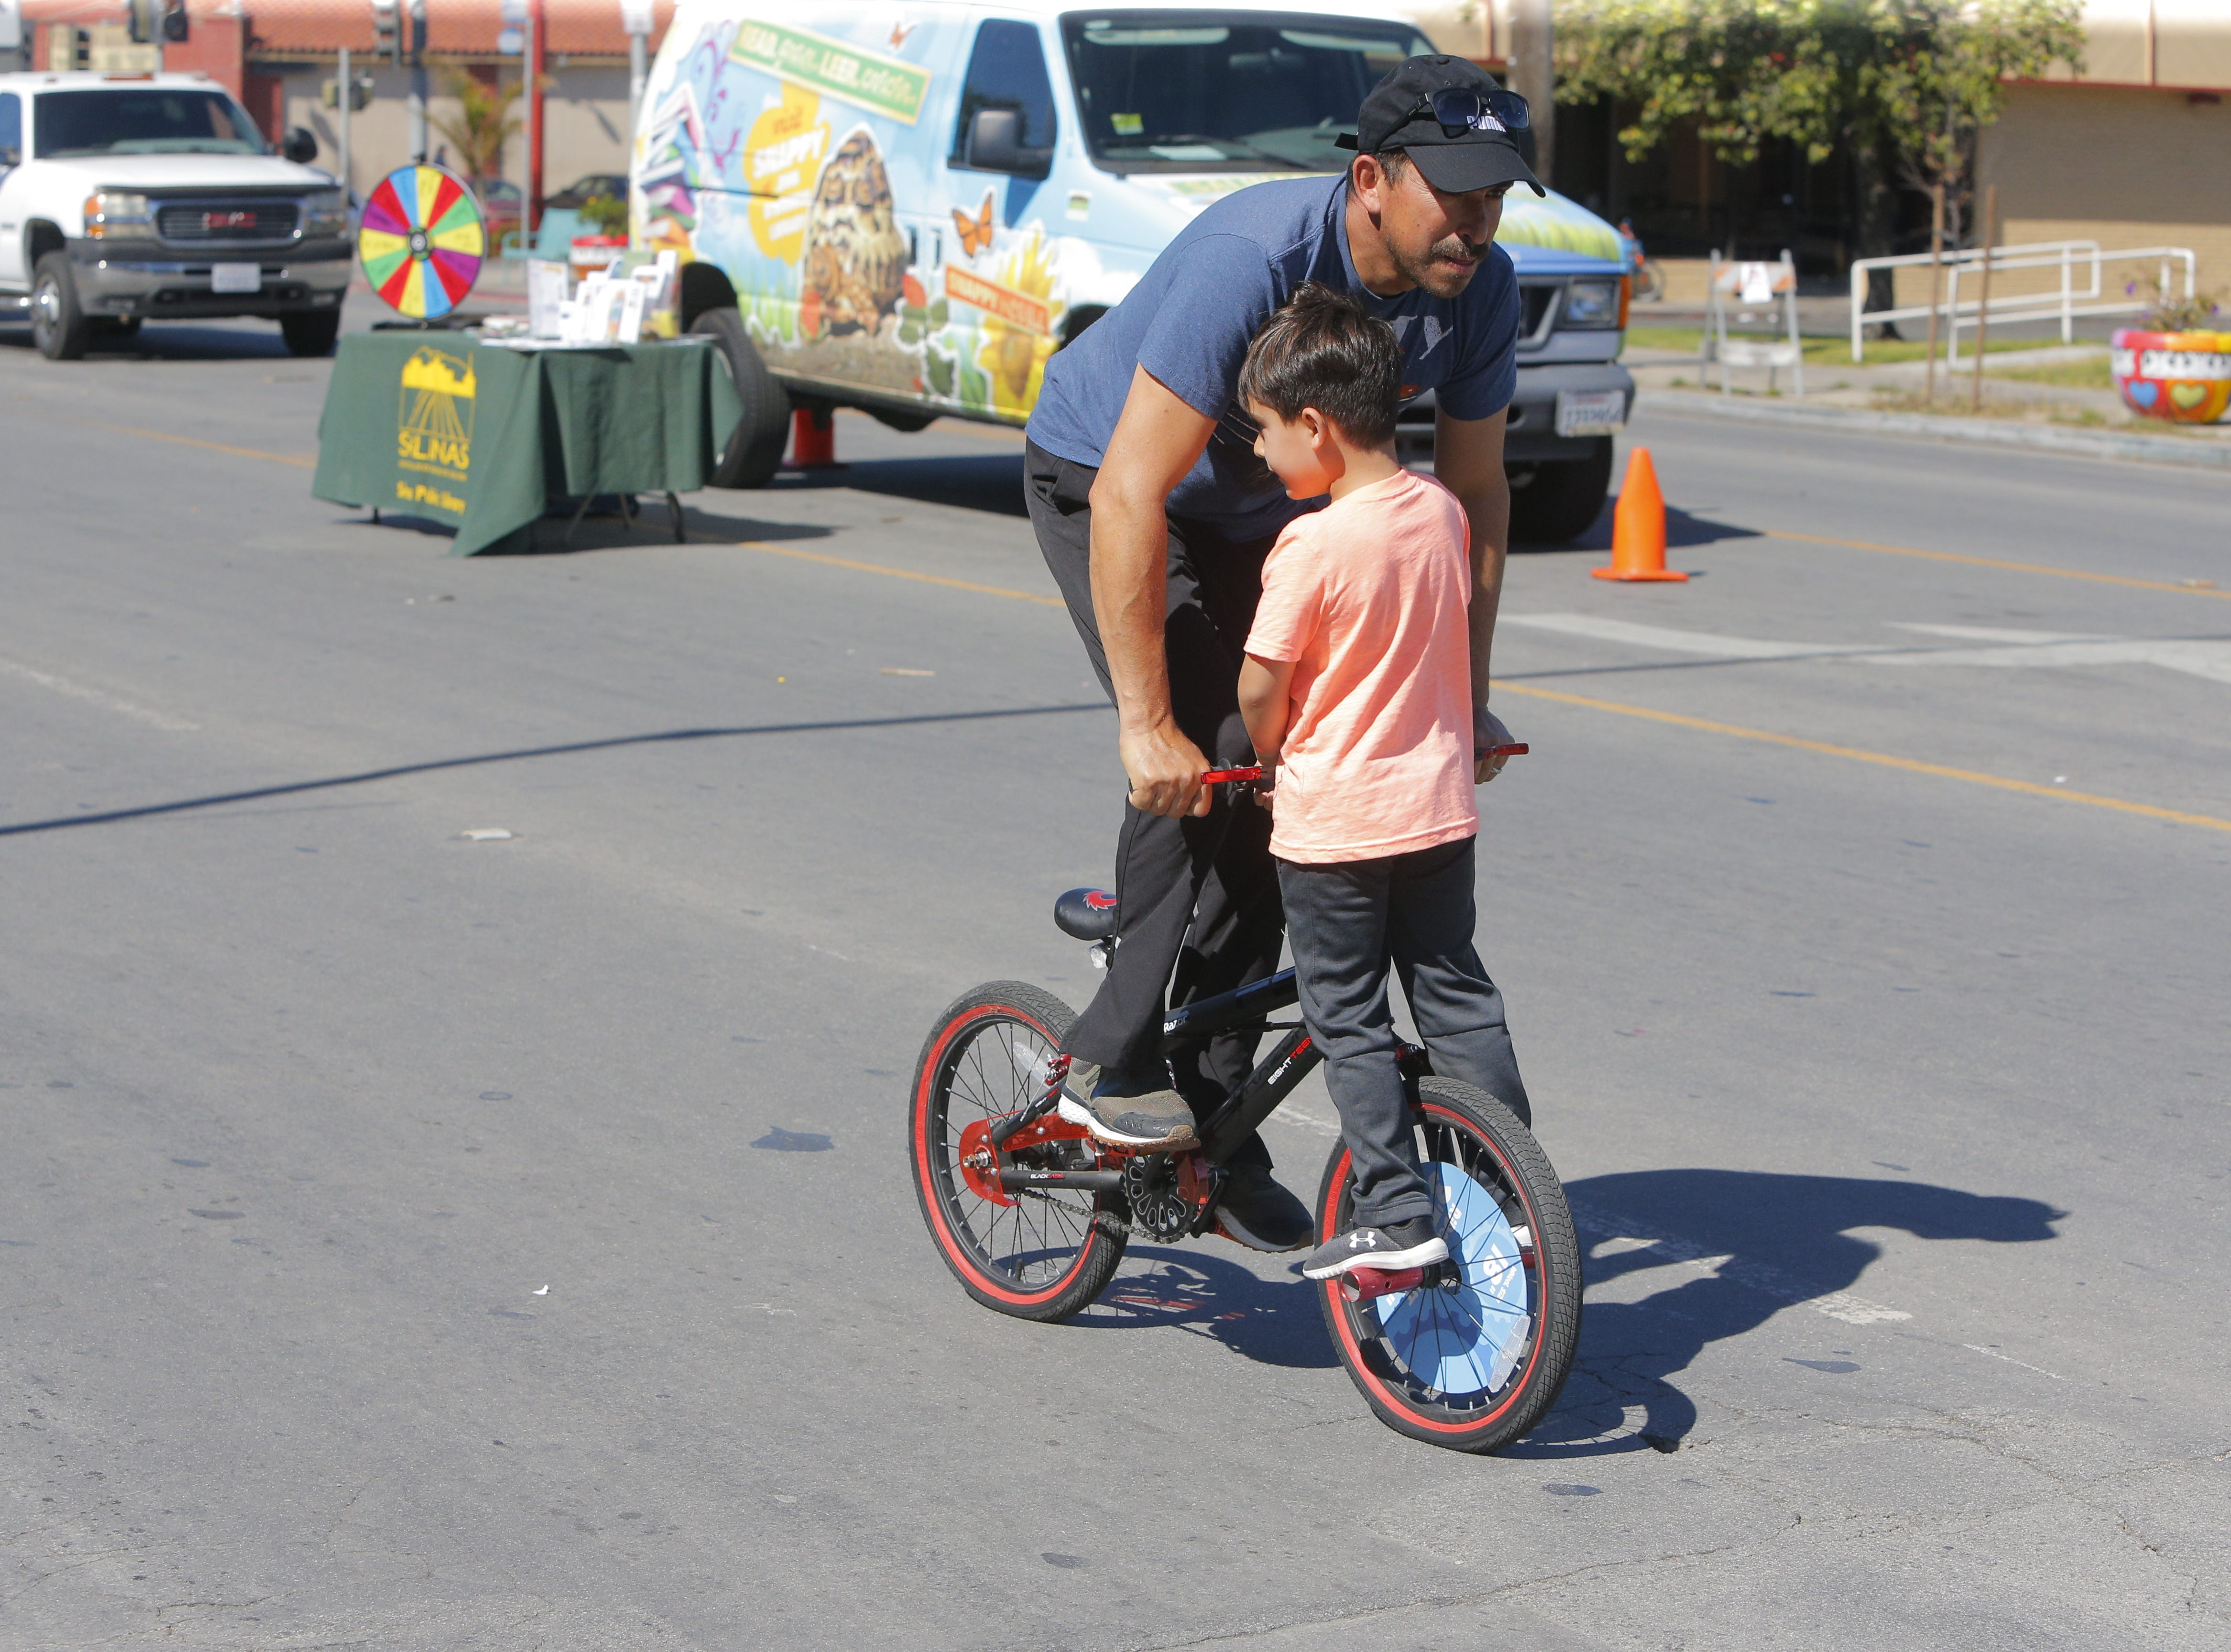 Salvador Ortega, 40, rides a bike wiht his son Pedro Ortega, 5, at 2018's Ciclovia Salinas on E. Alisal Street Sunday.